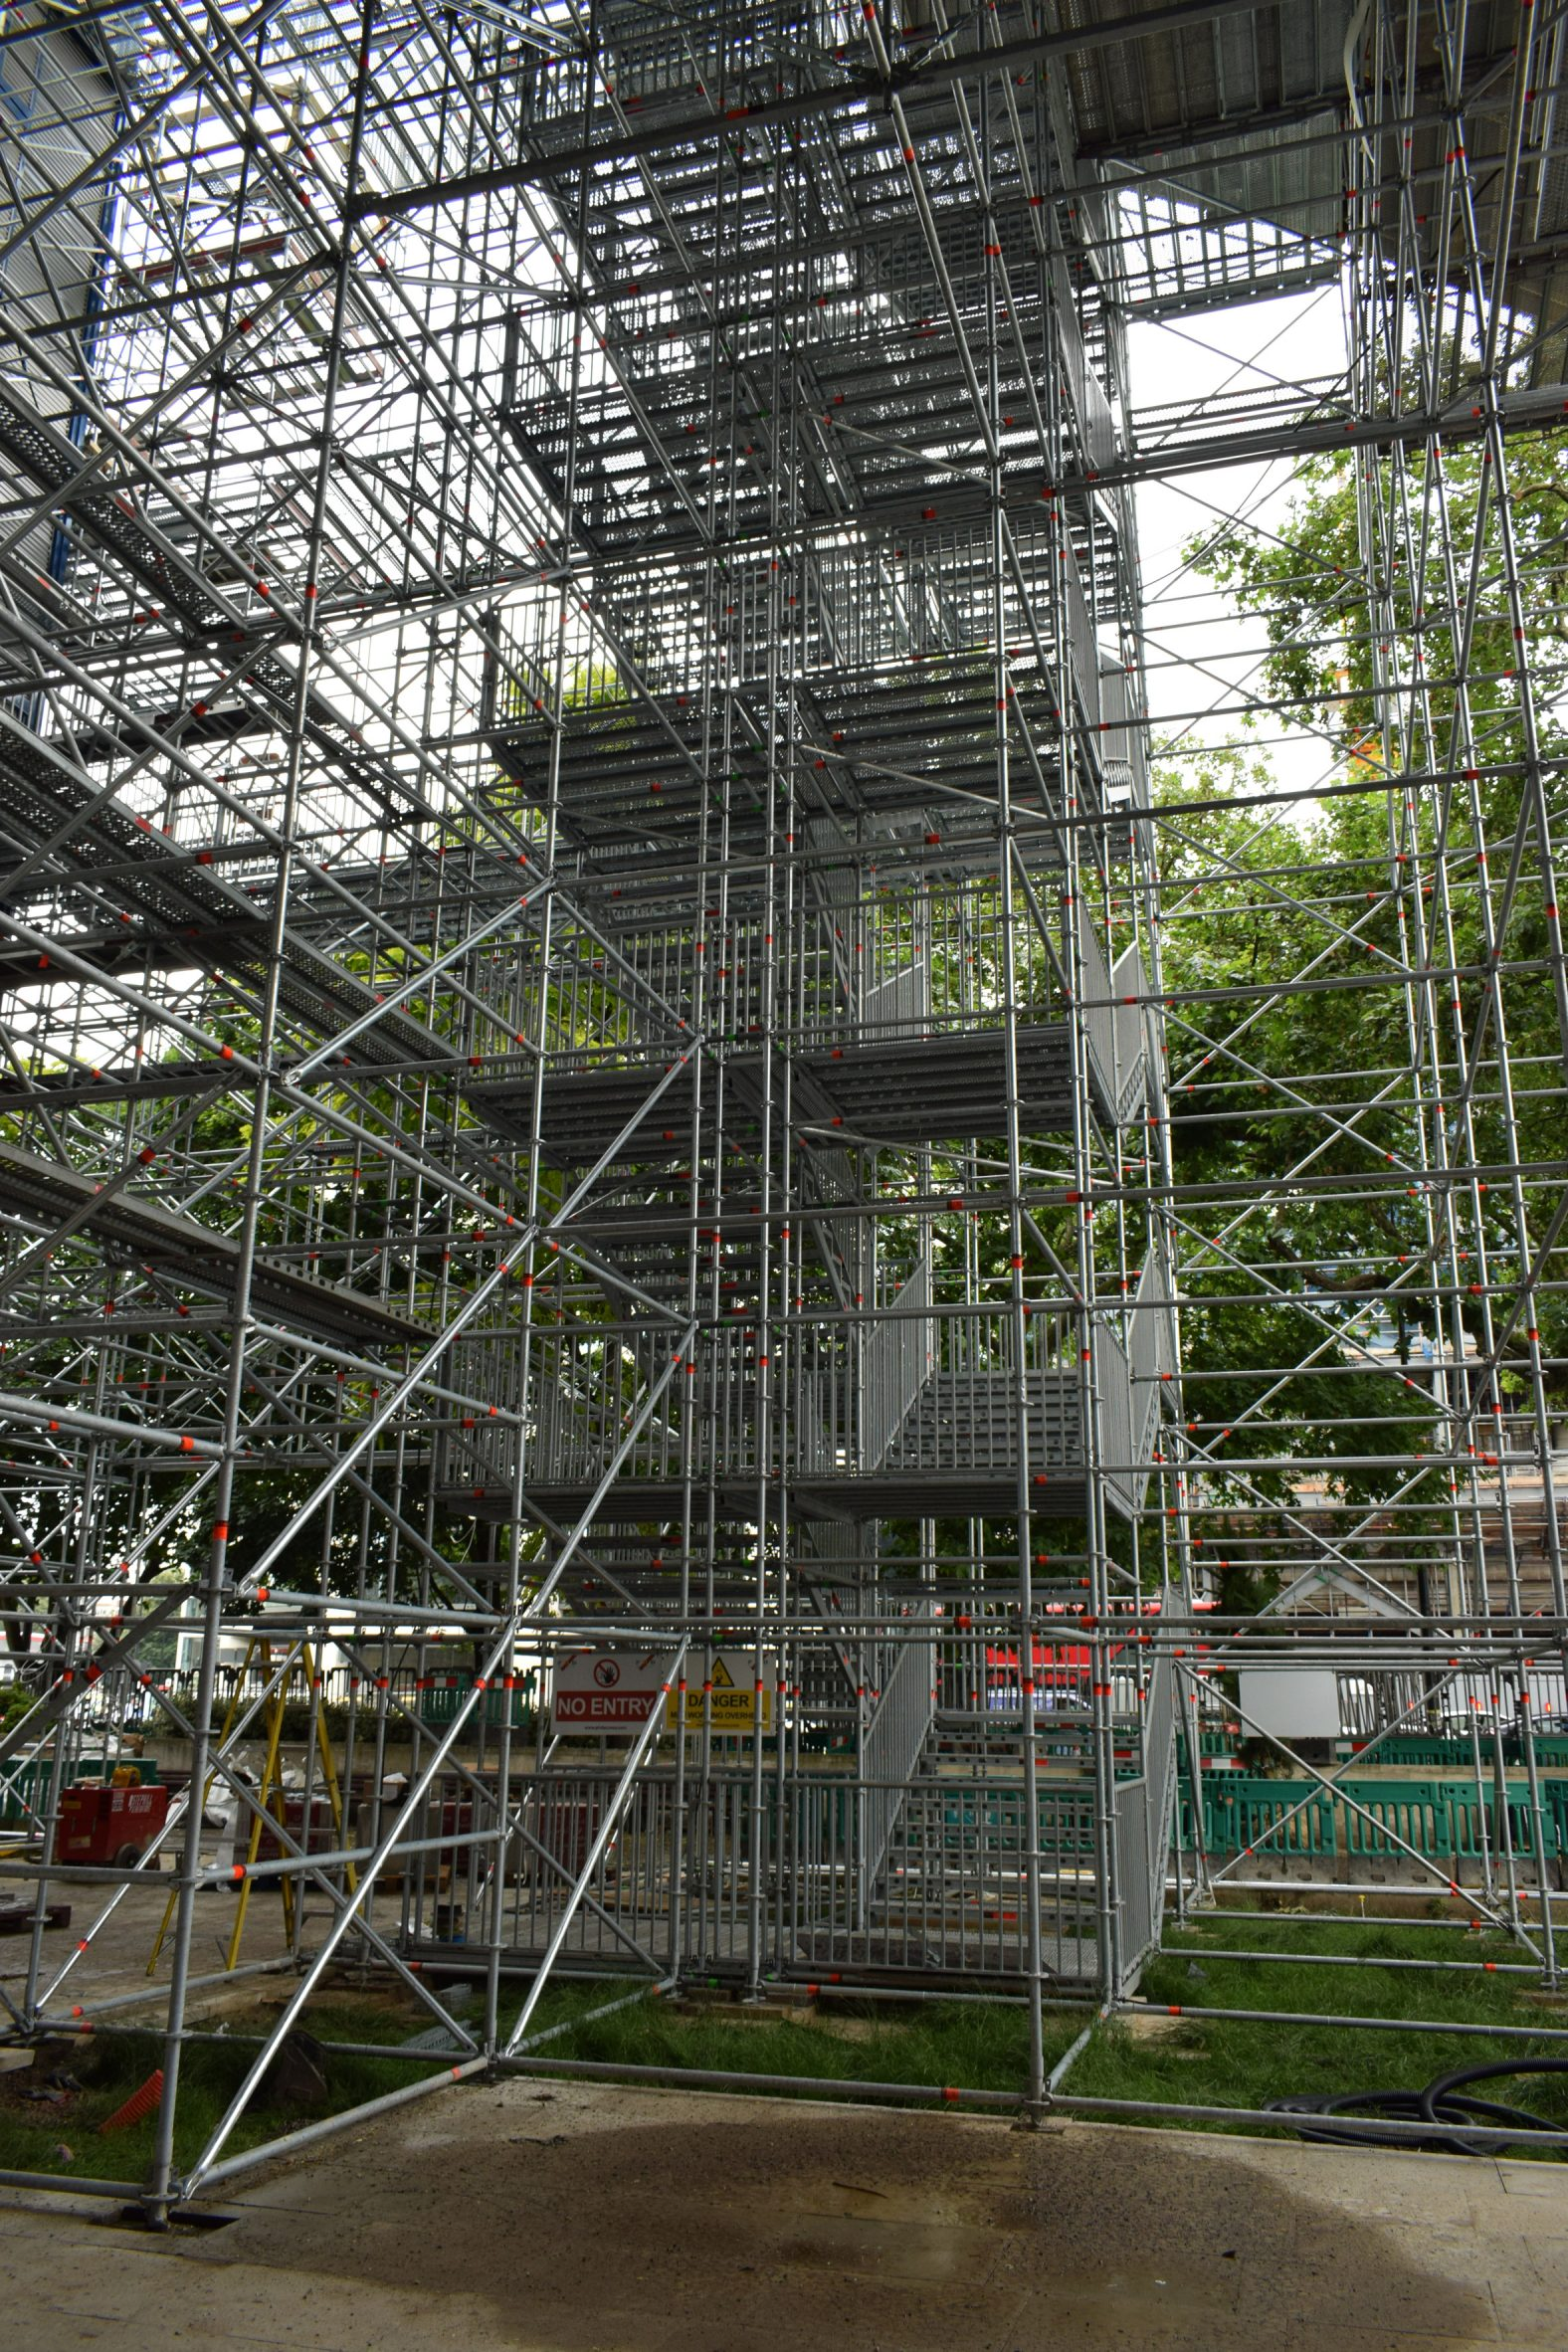 Scaffolding structure of the viewpoint in London